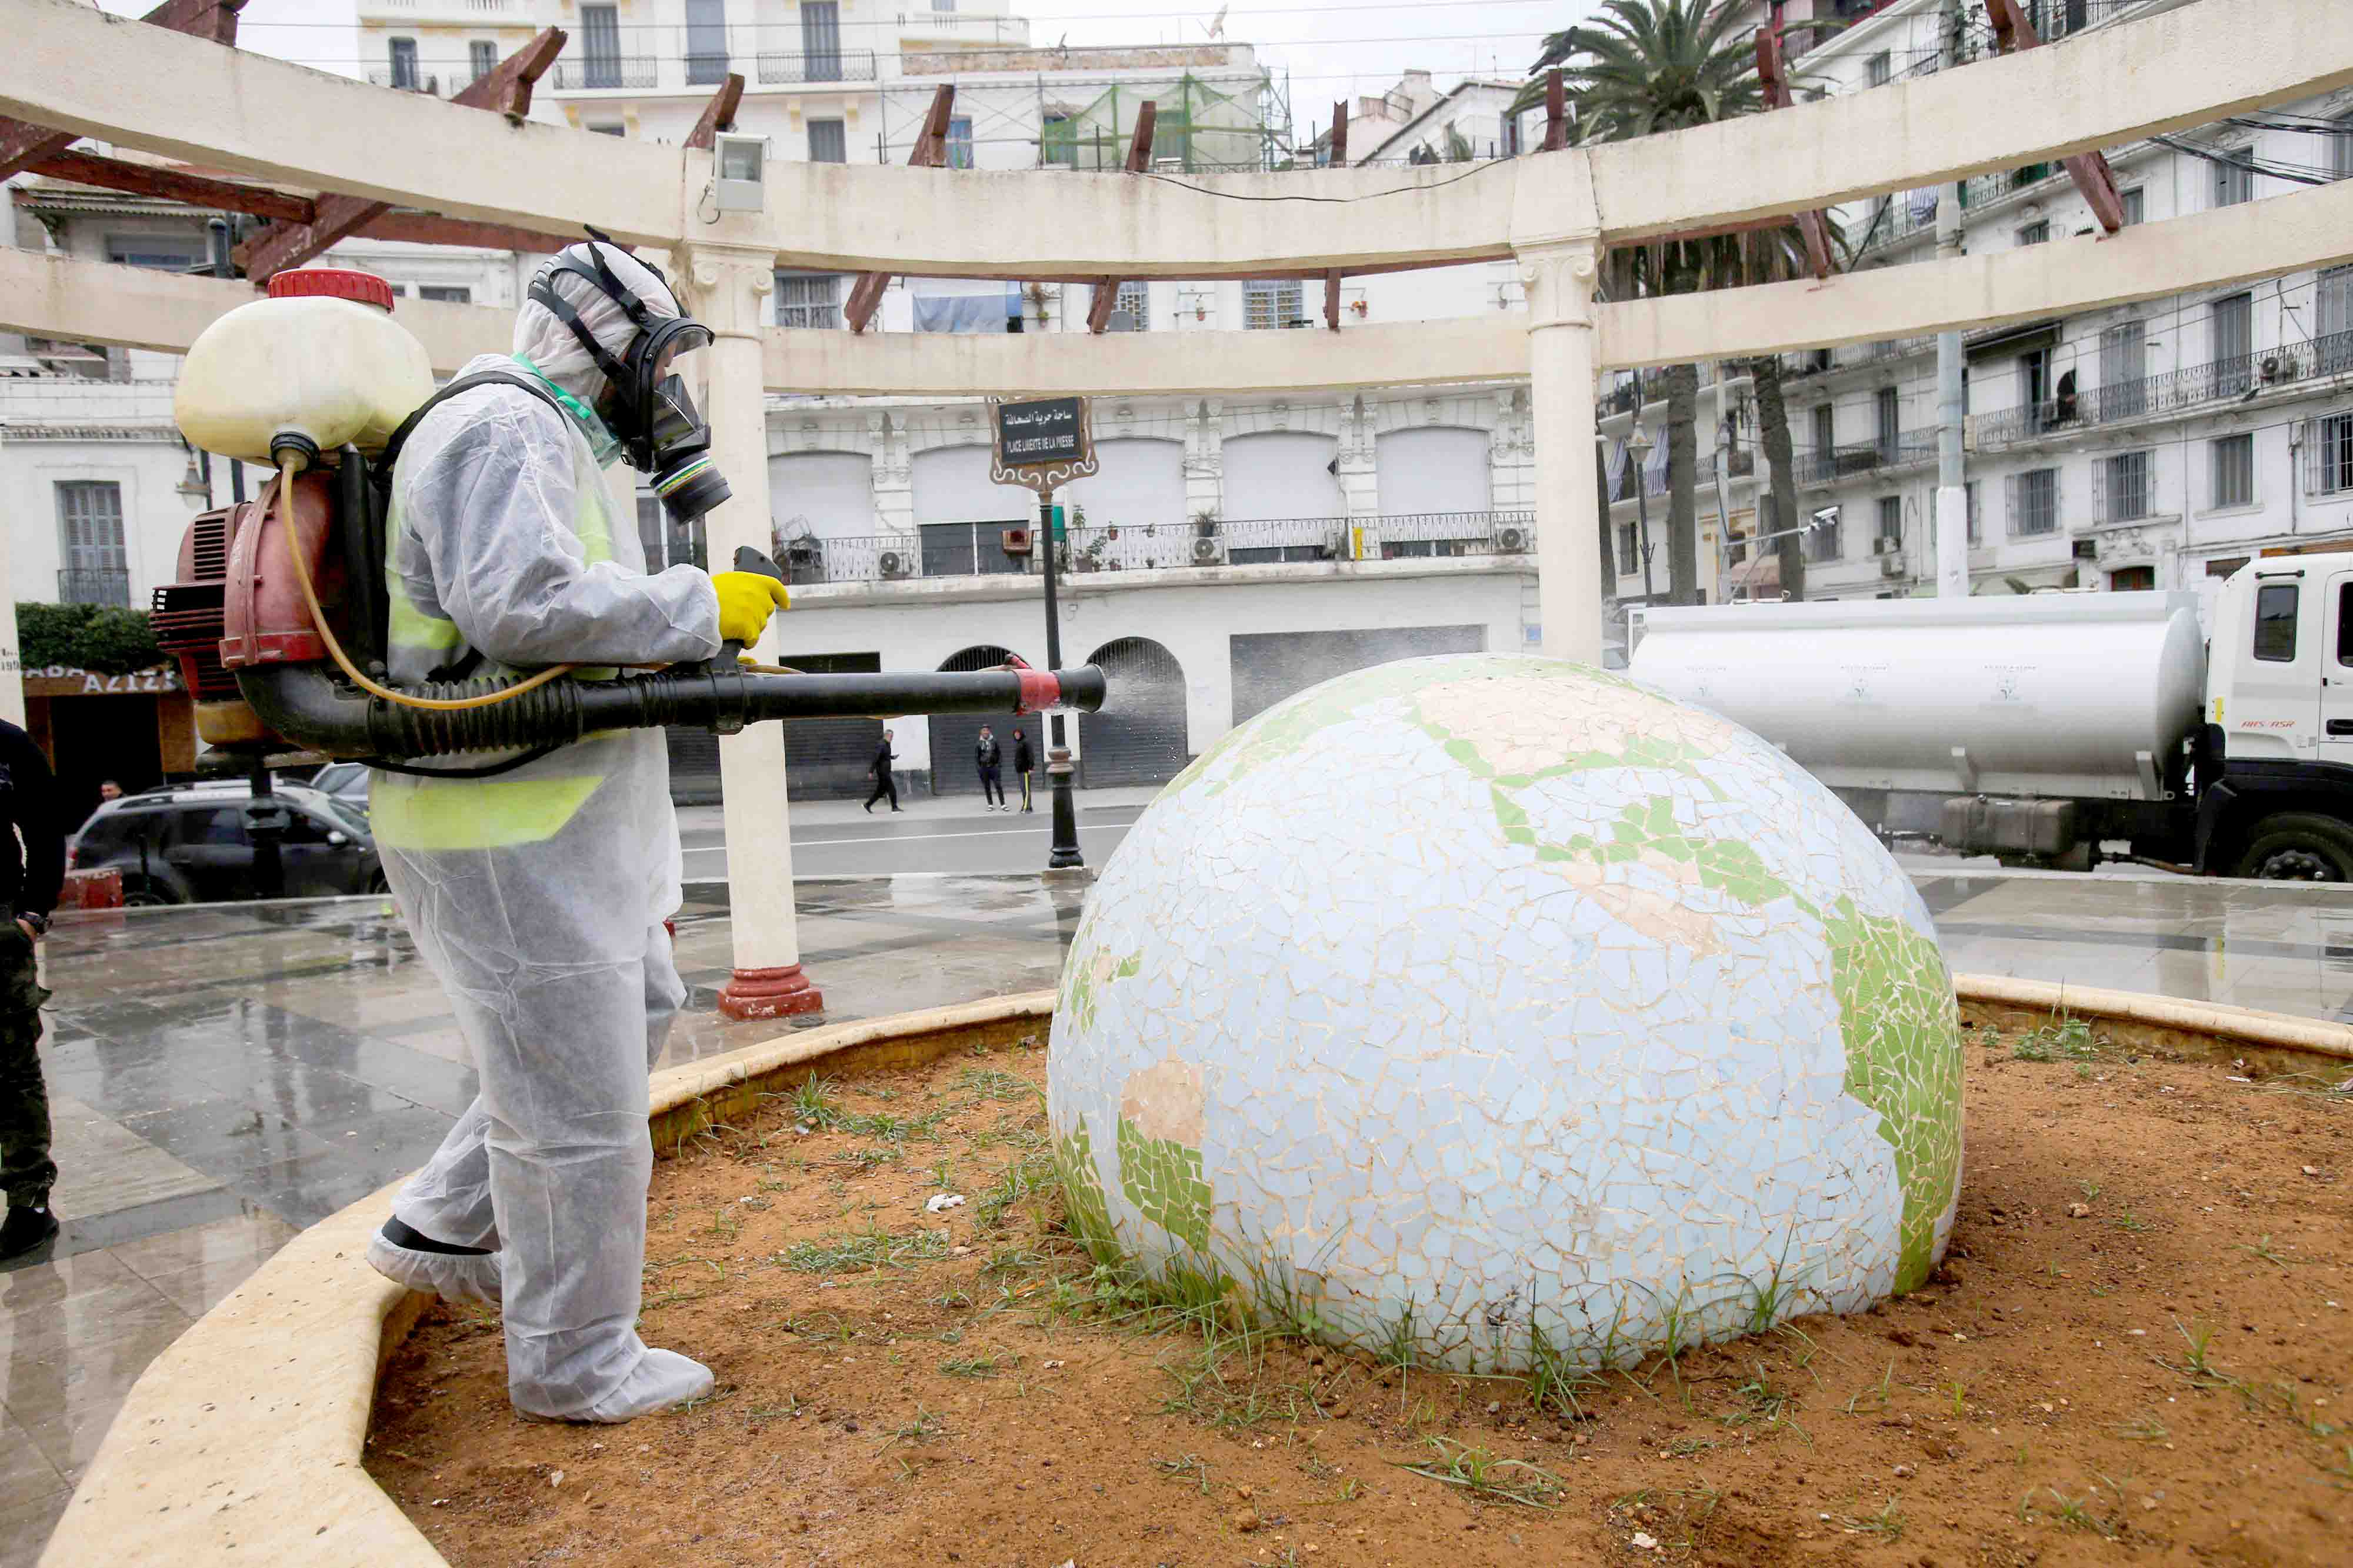 A worker wearing a protective suit disinfects a globe-shaped public garden, following the outbreak of coronavirus disease in Algiers, March 23. (Reuters)